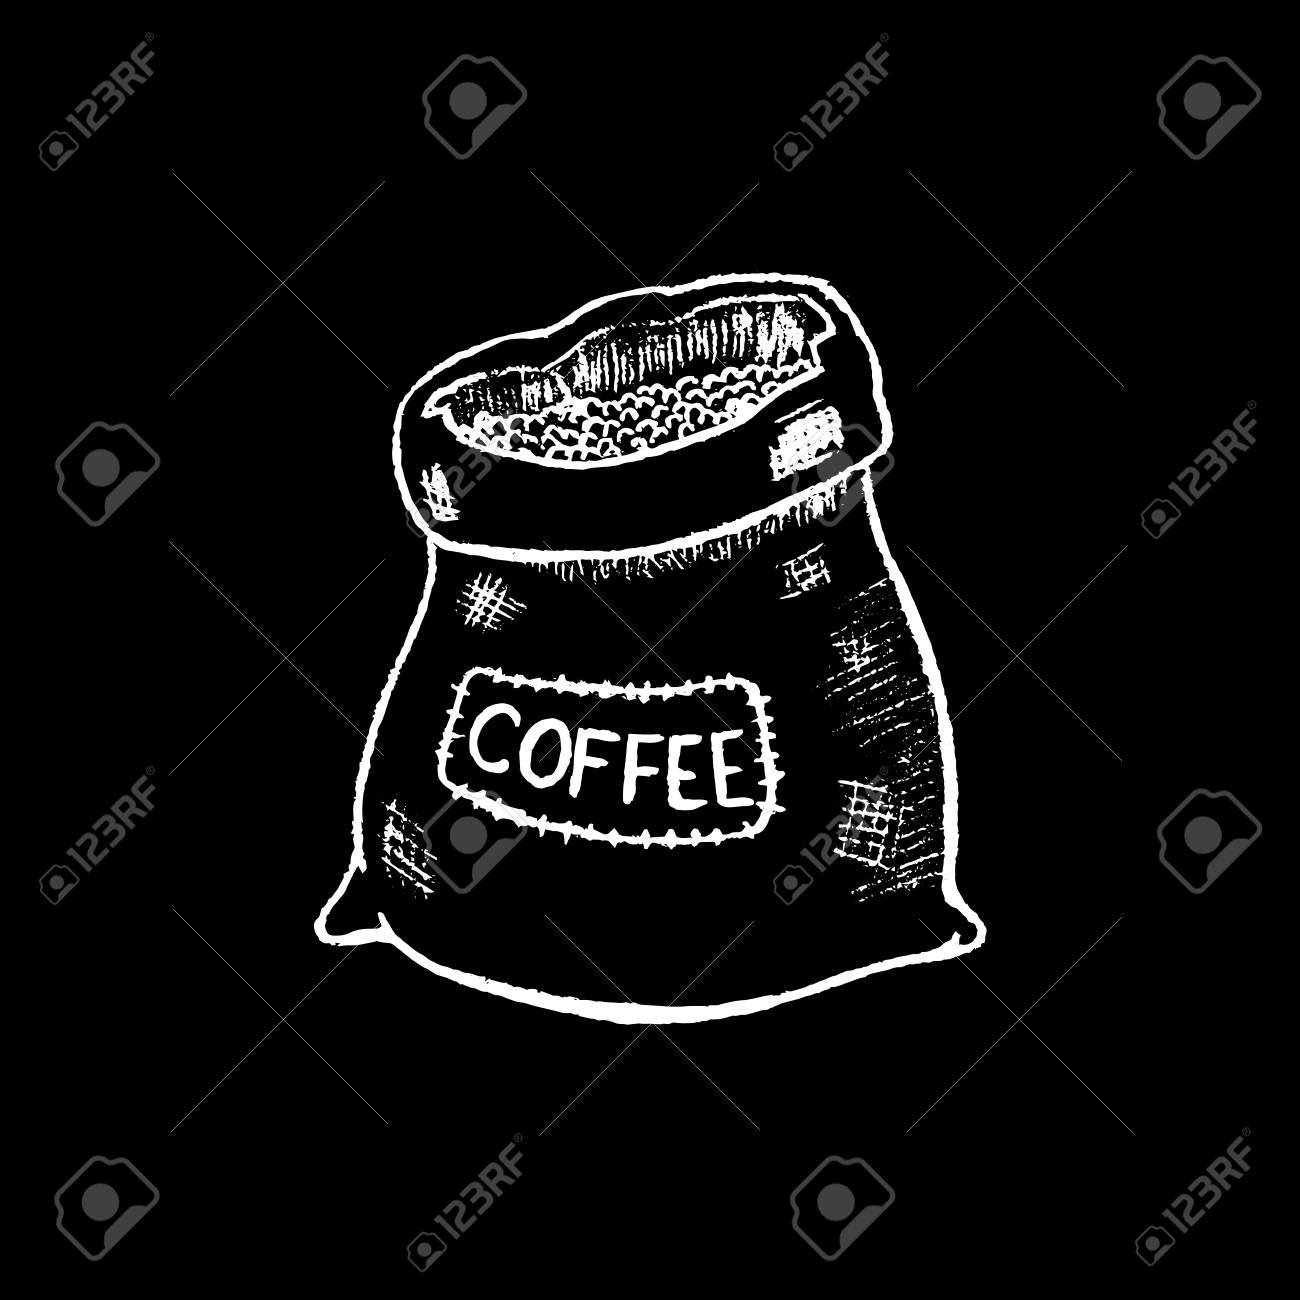 Coffee Sack White Chalk On Black Chalkboard Vector Illustration Burlap Rustic